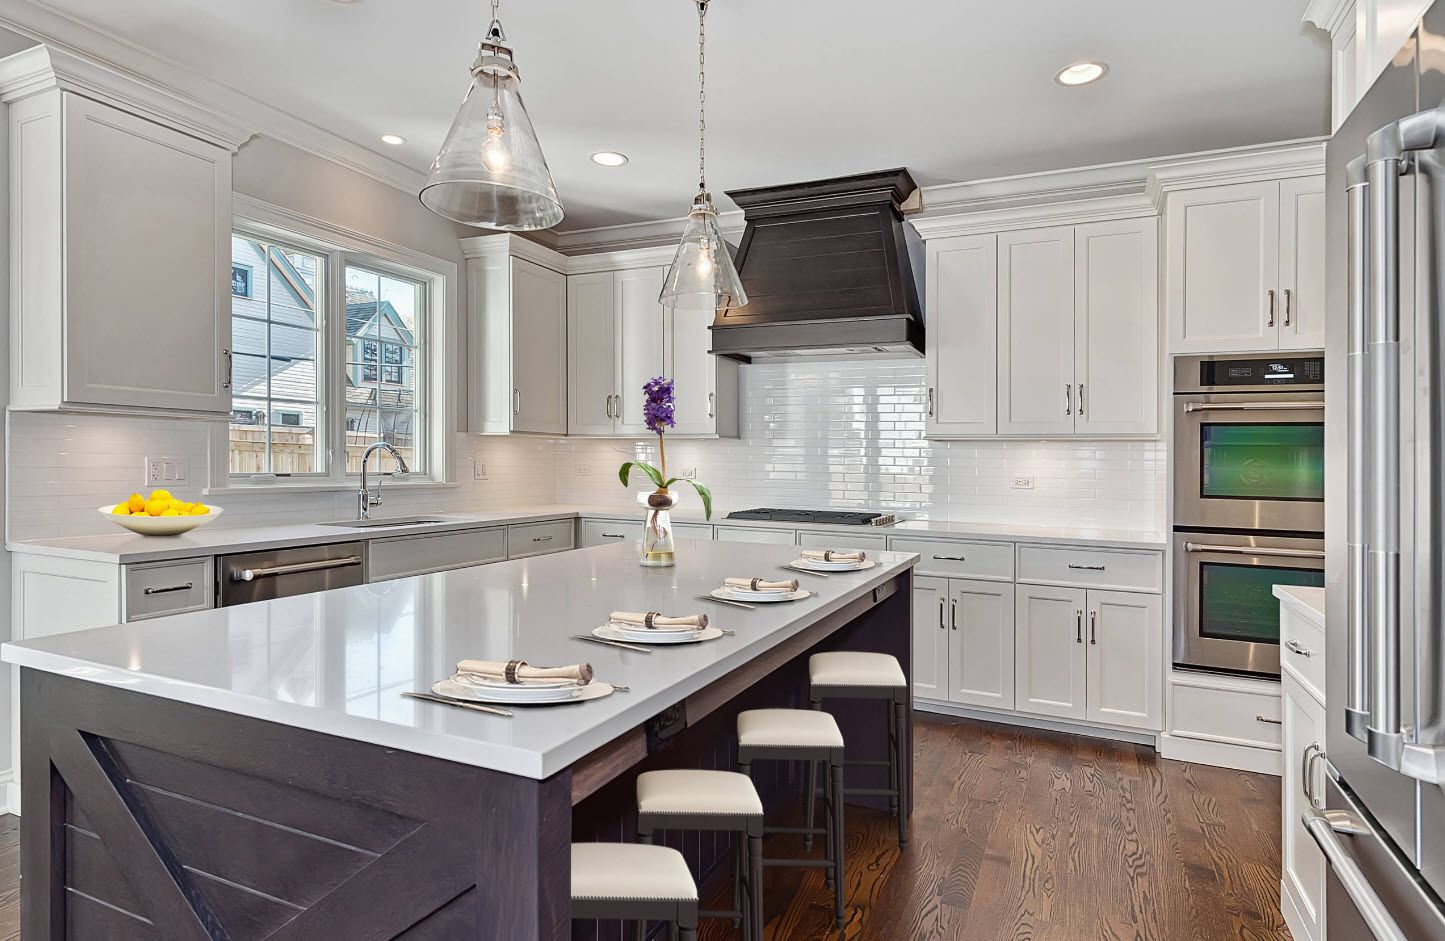 160 Square Feet Kitchen Design Ideas. Dark extractor hood and glossy white countertop of the classic kitchen